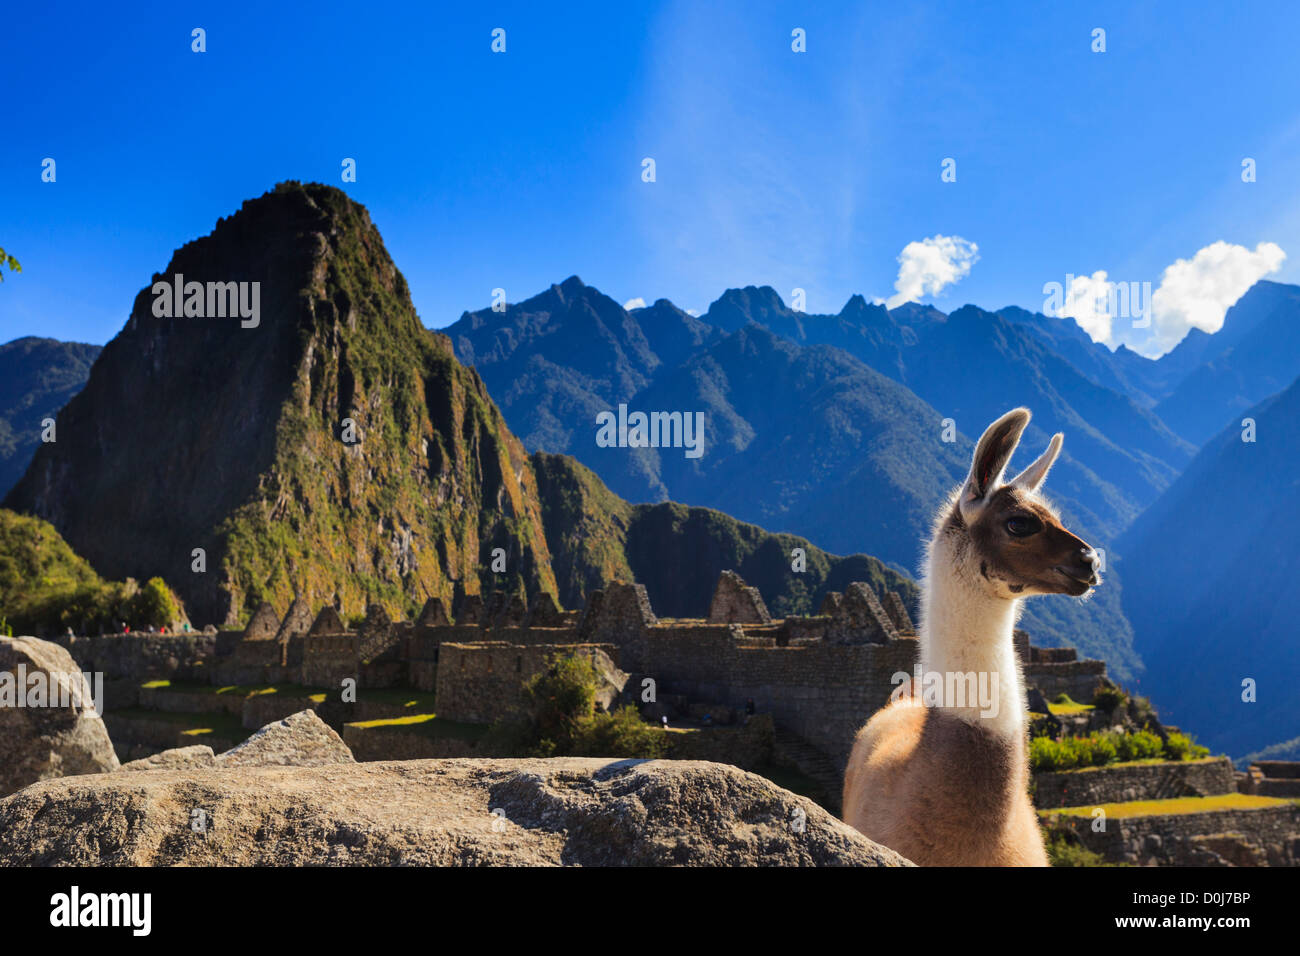 Llama in Machu Picchu Archeological Site, Cuzco Province, Peru - Stock Image